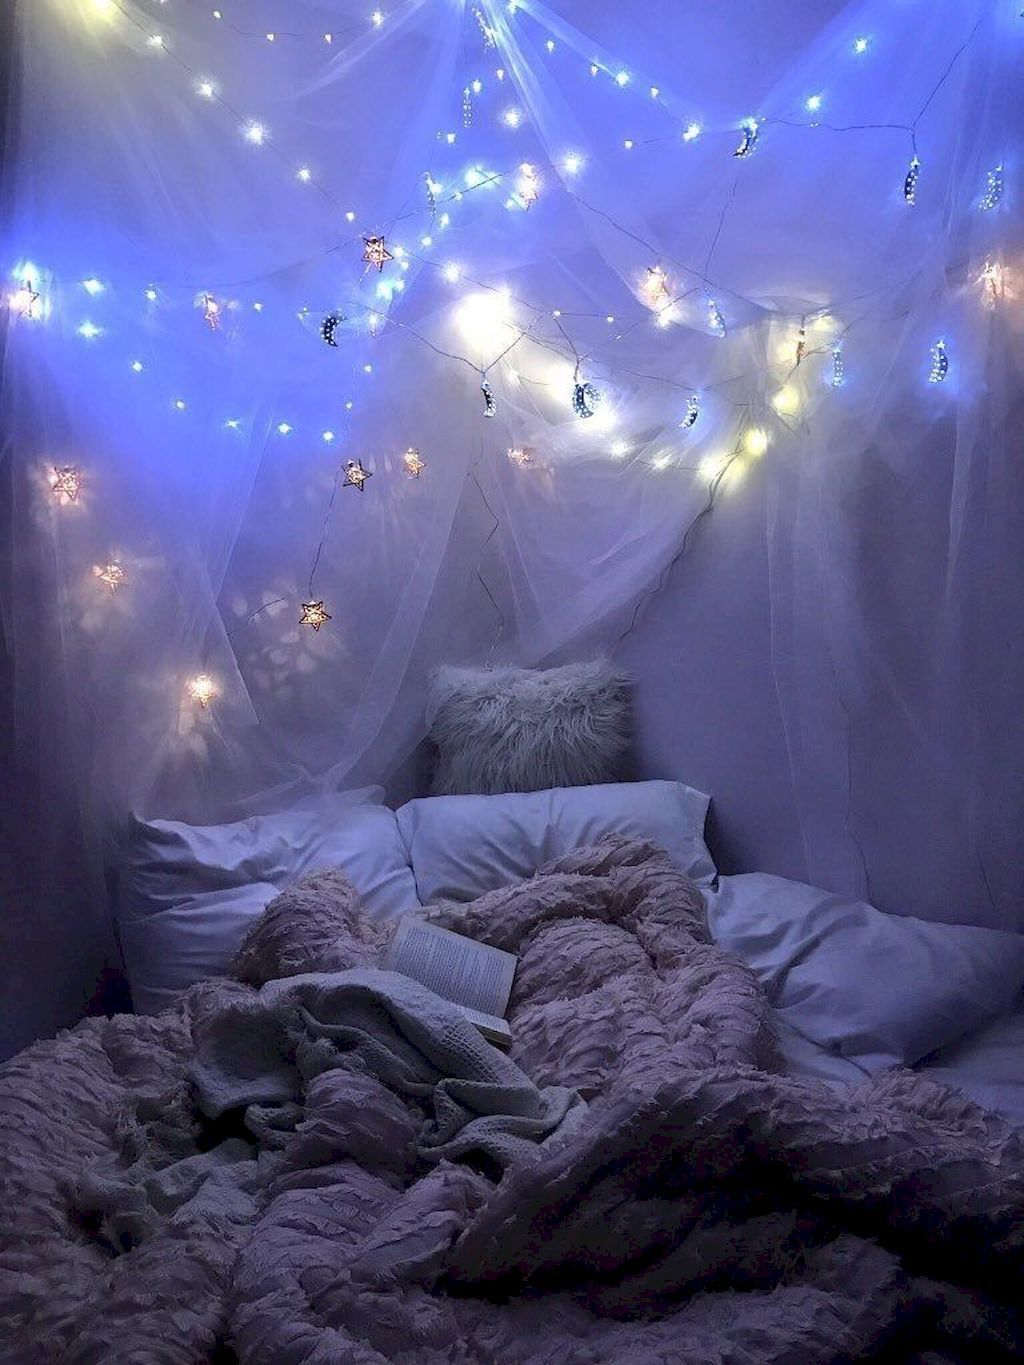 Bedroom Decoration Ideas For Romantic Moment Home To Z Fairy Lights Bedroom Room Inspiration Bedroom Bedroom Design Romantic bedroom lighting ideas